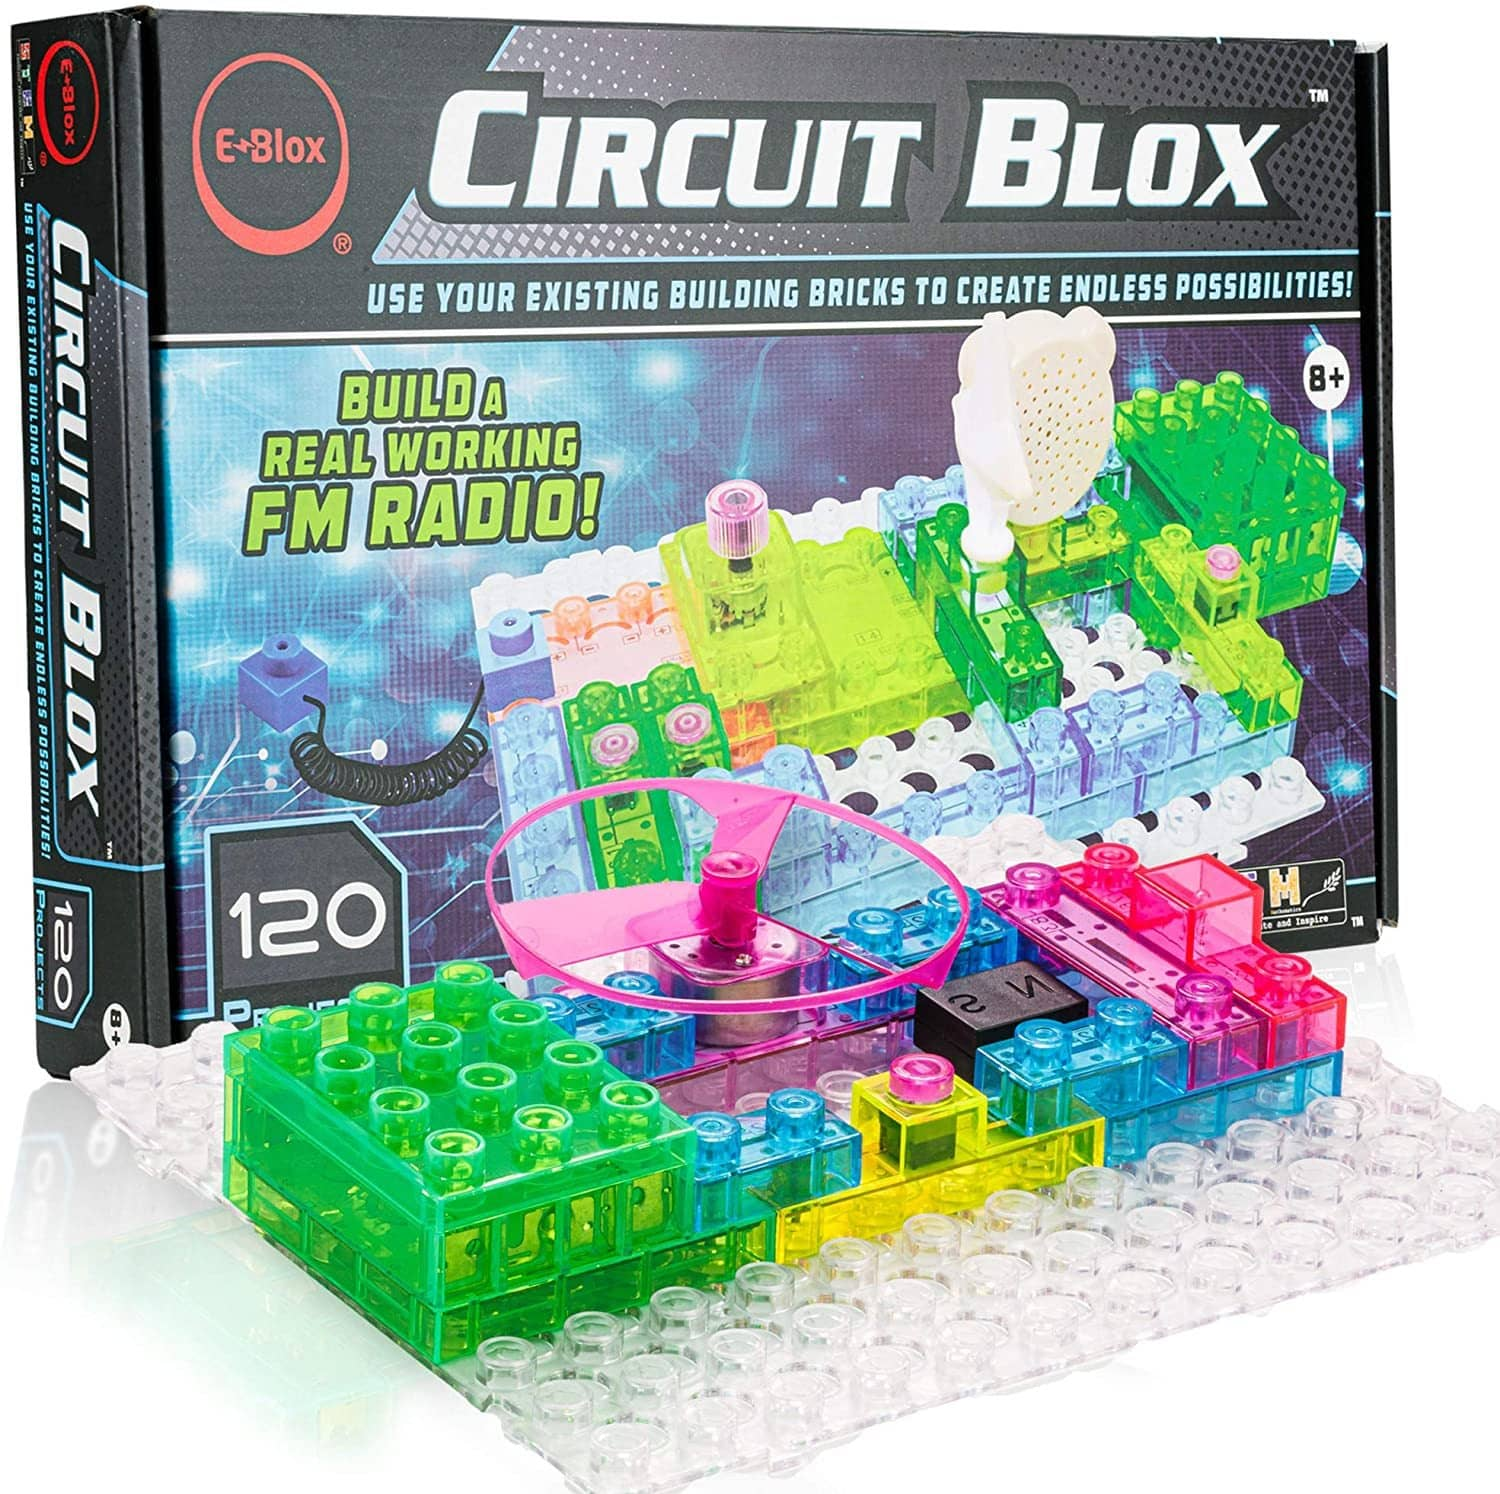 E-Blox Circuit Blox 120 Projects-Kidding Around NYC